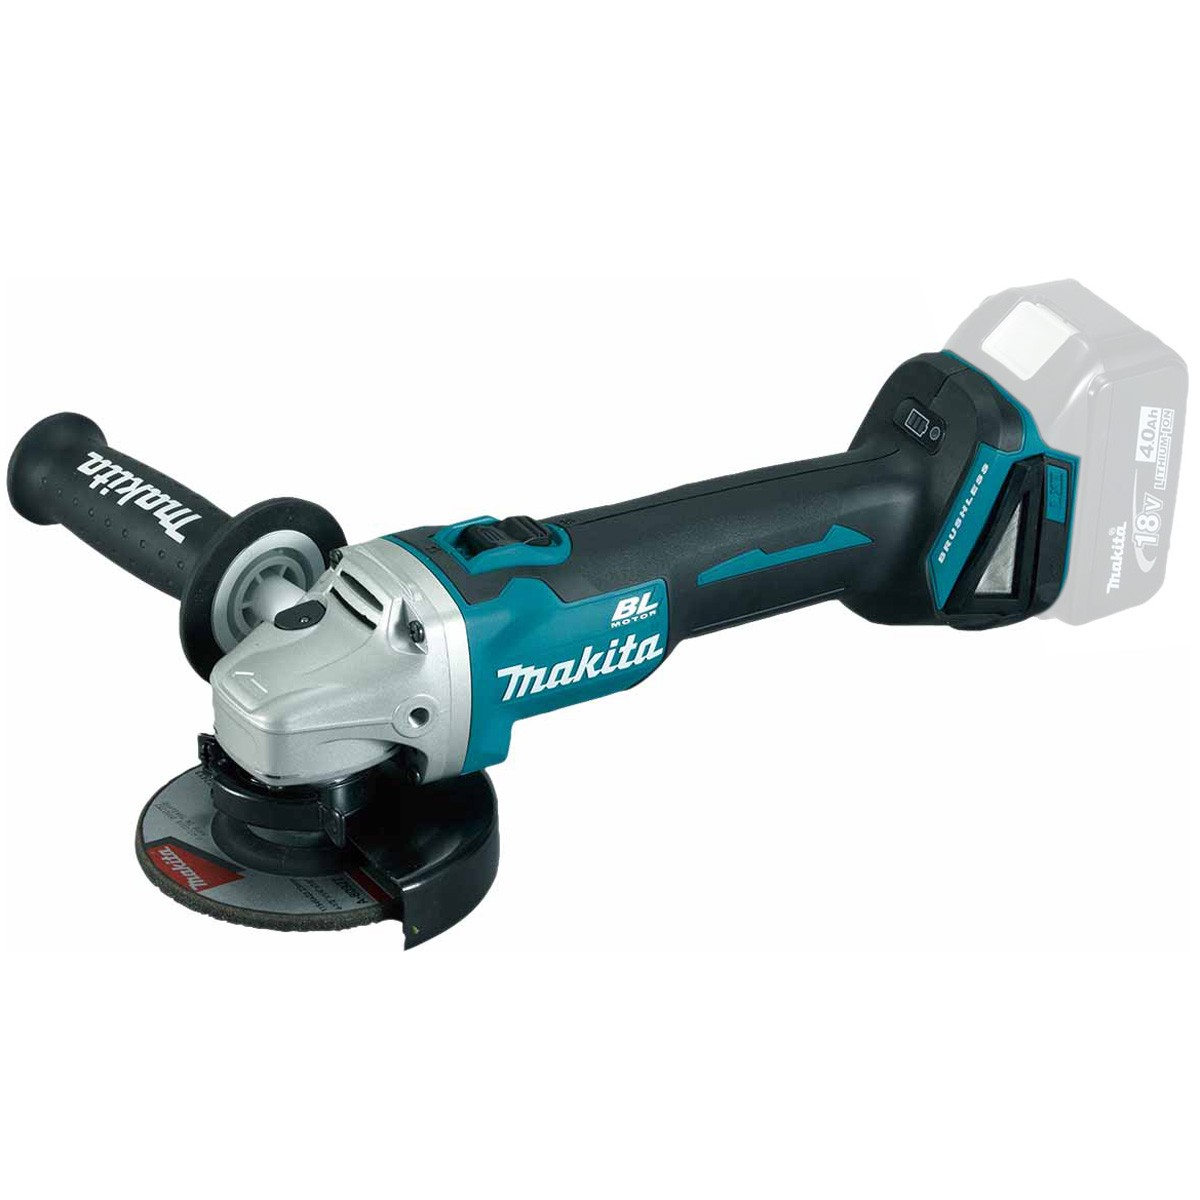 Makita DGA454Z 18v 115mm Brushless LXT Angle Grinder Body Only